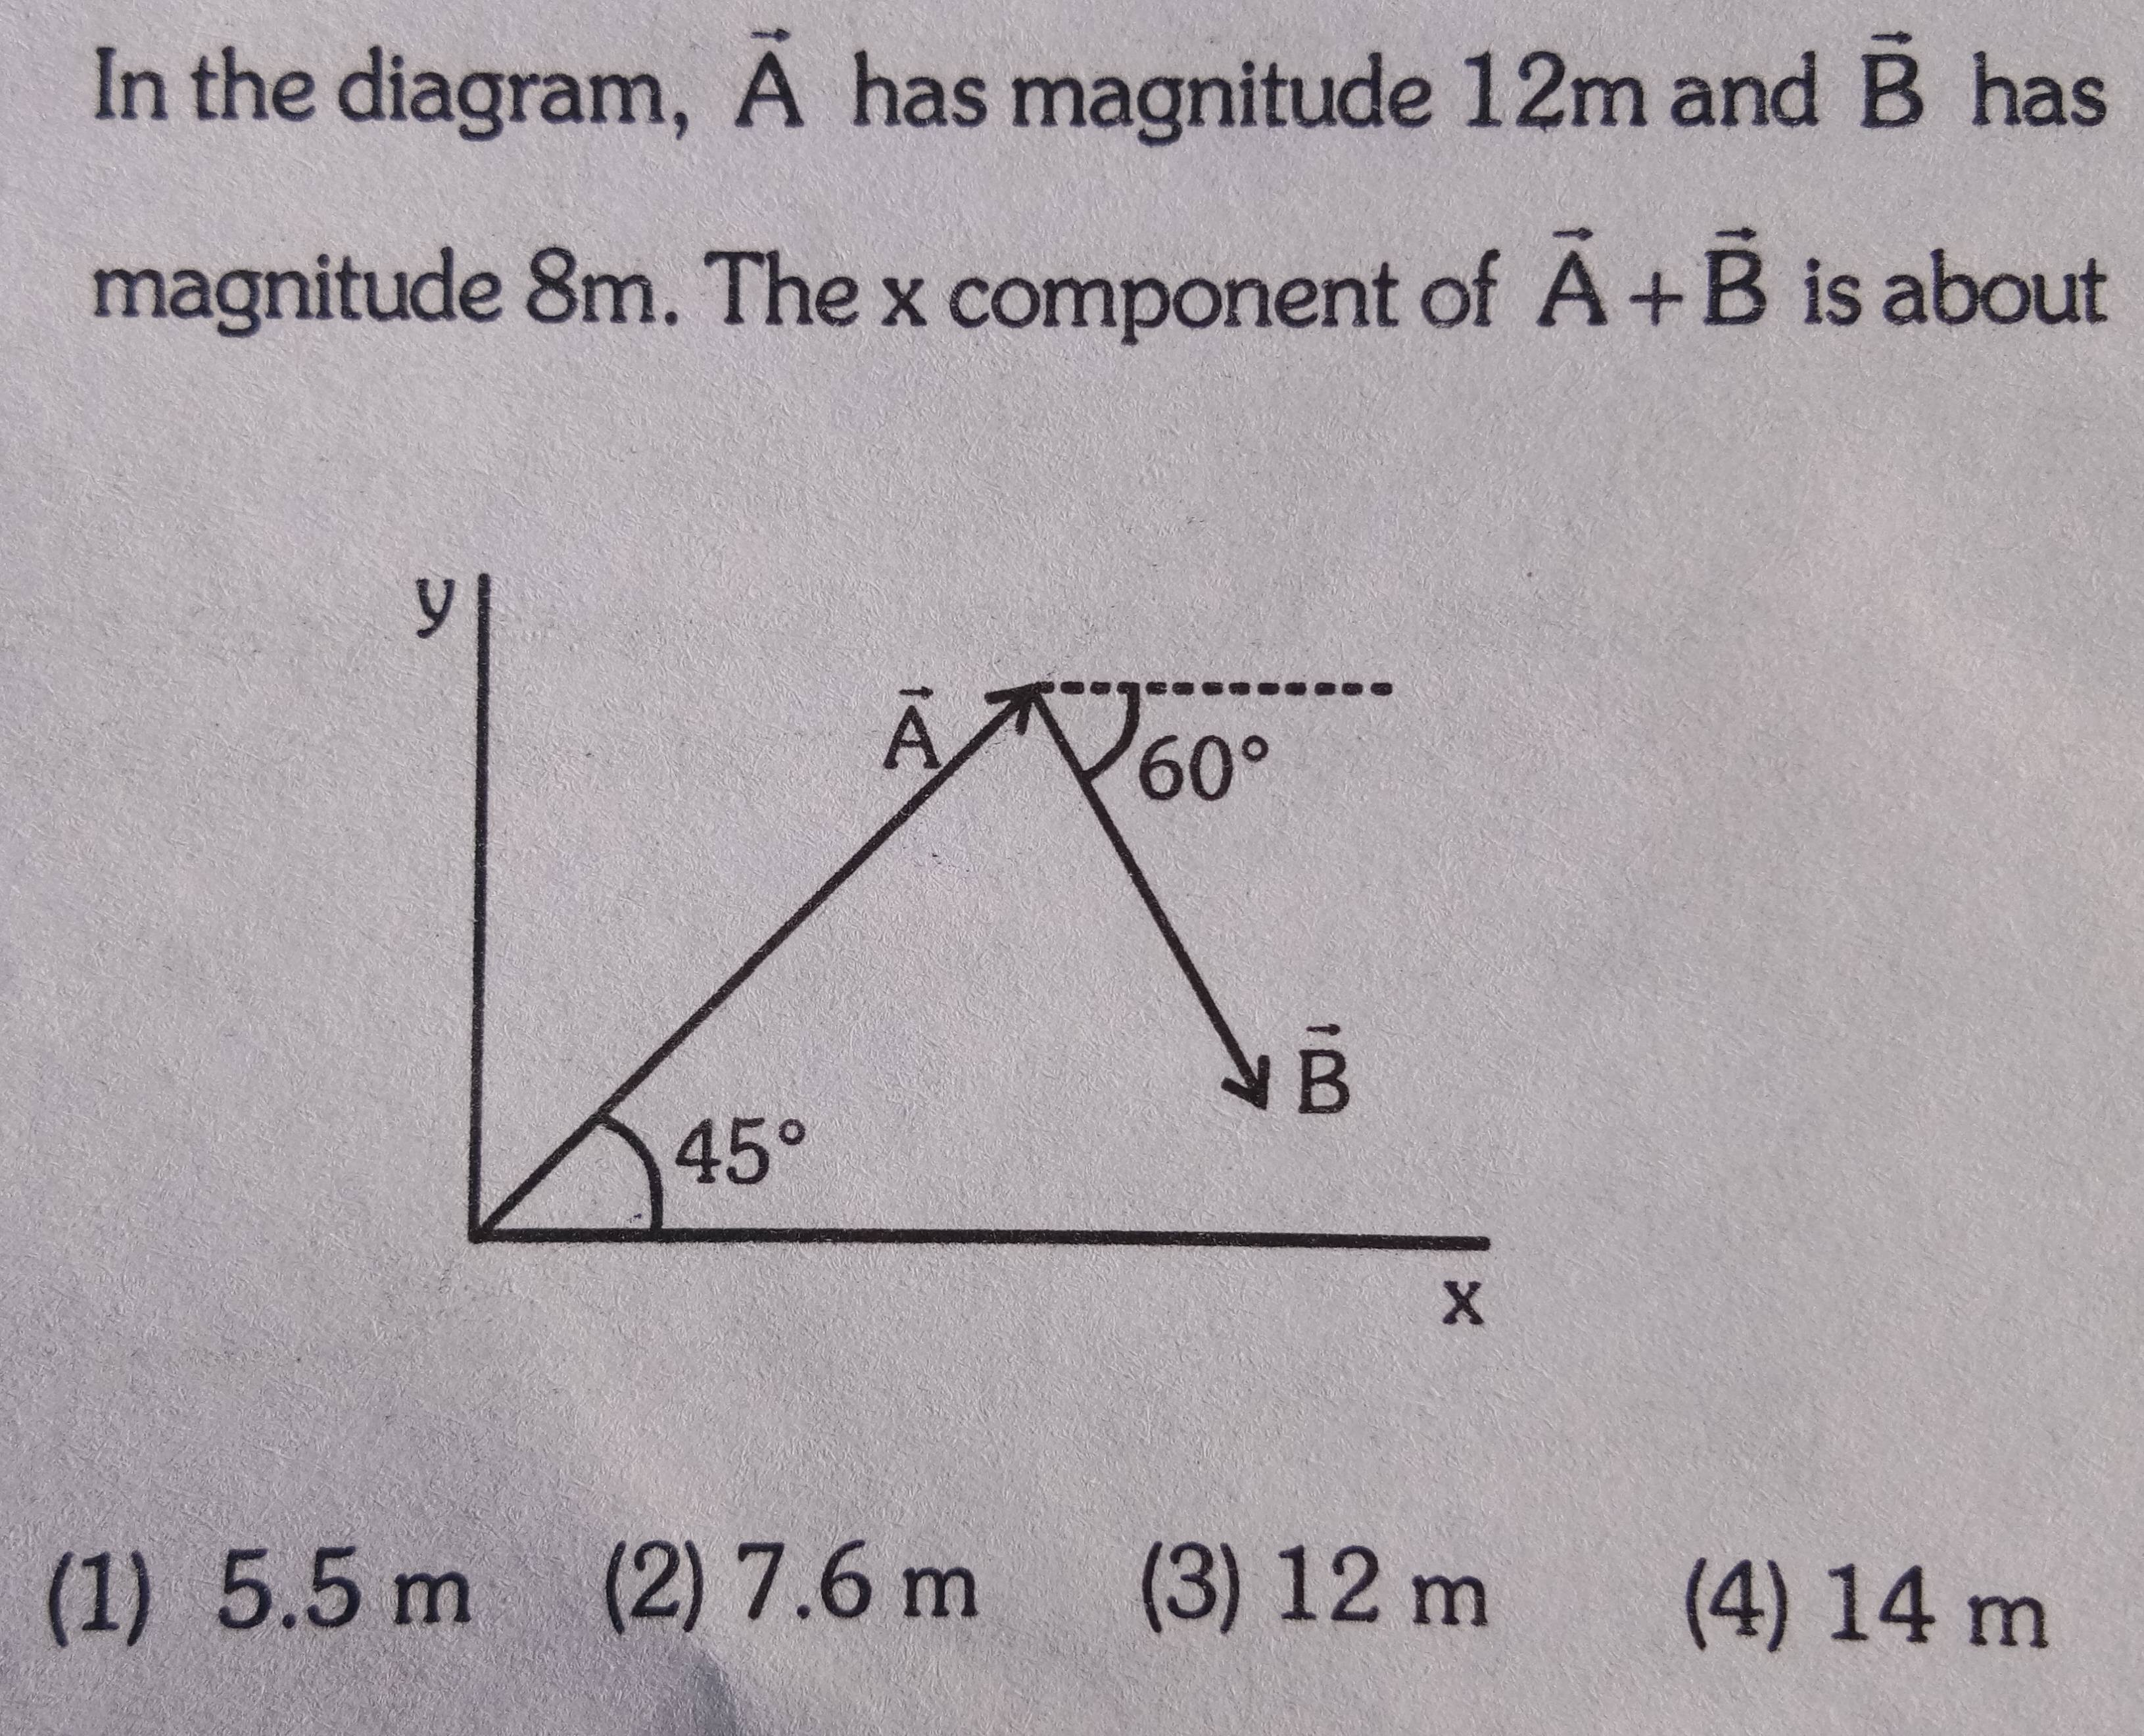 Cbse Class 9 Physics Solutions Online Study Material Textbook